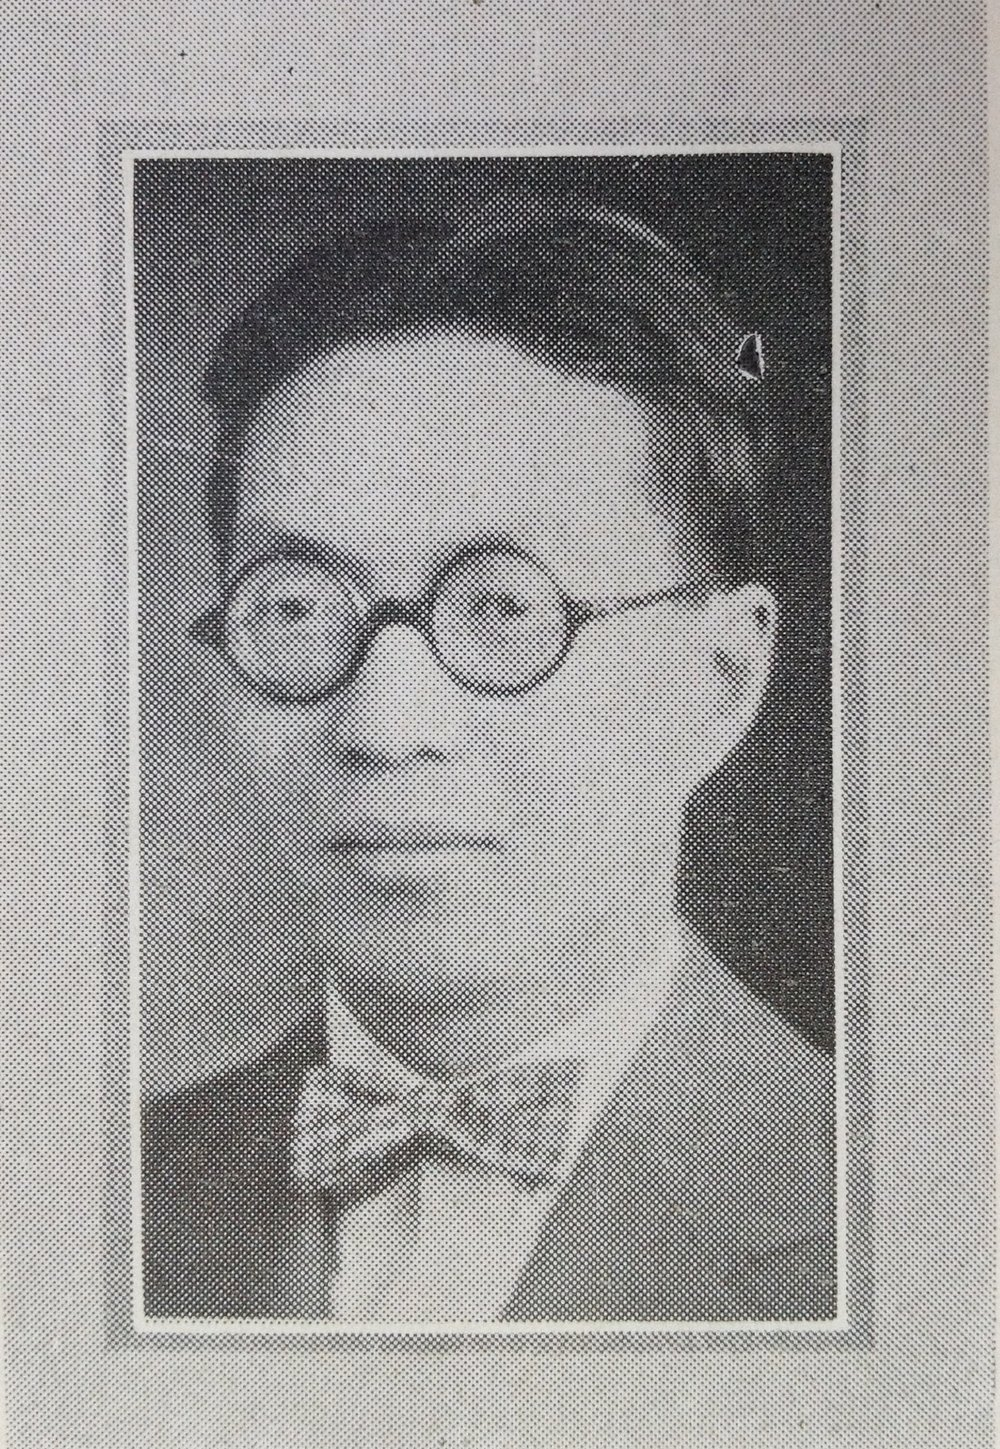 Frank C.Lin. Technique   1927. Courtesy MIT Archives and Special Collections.